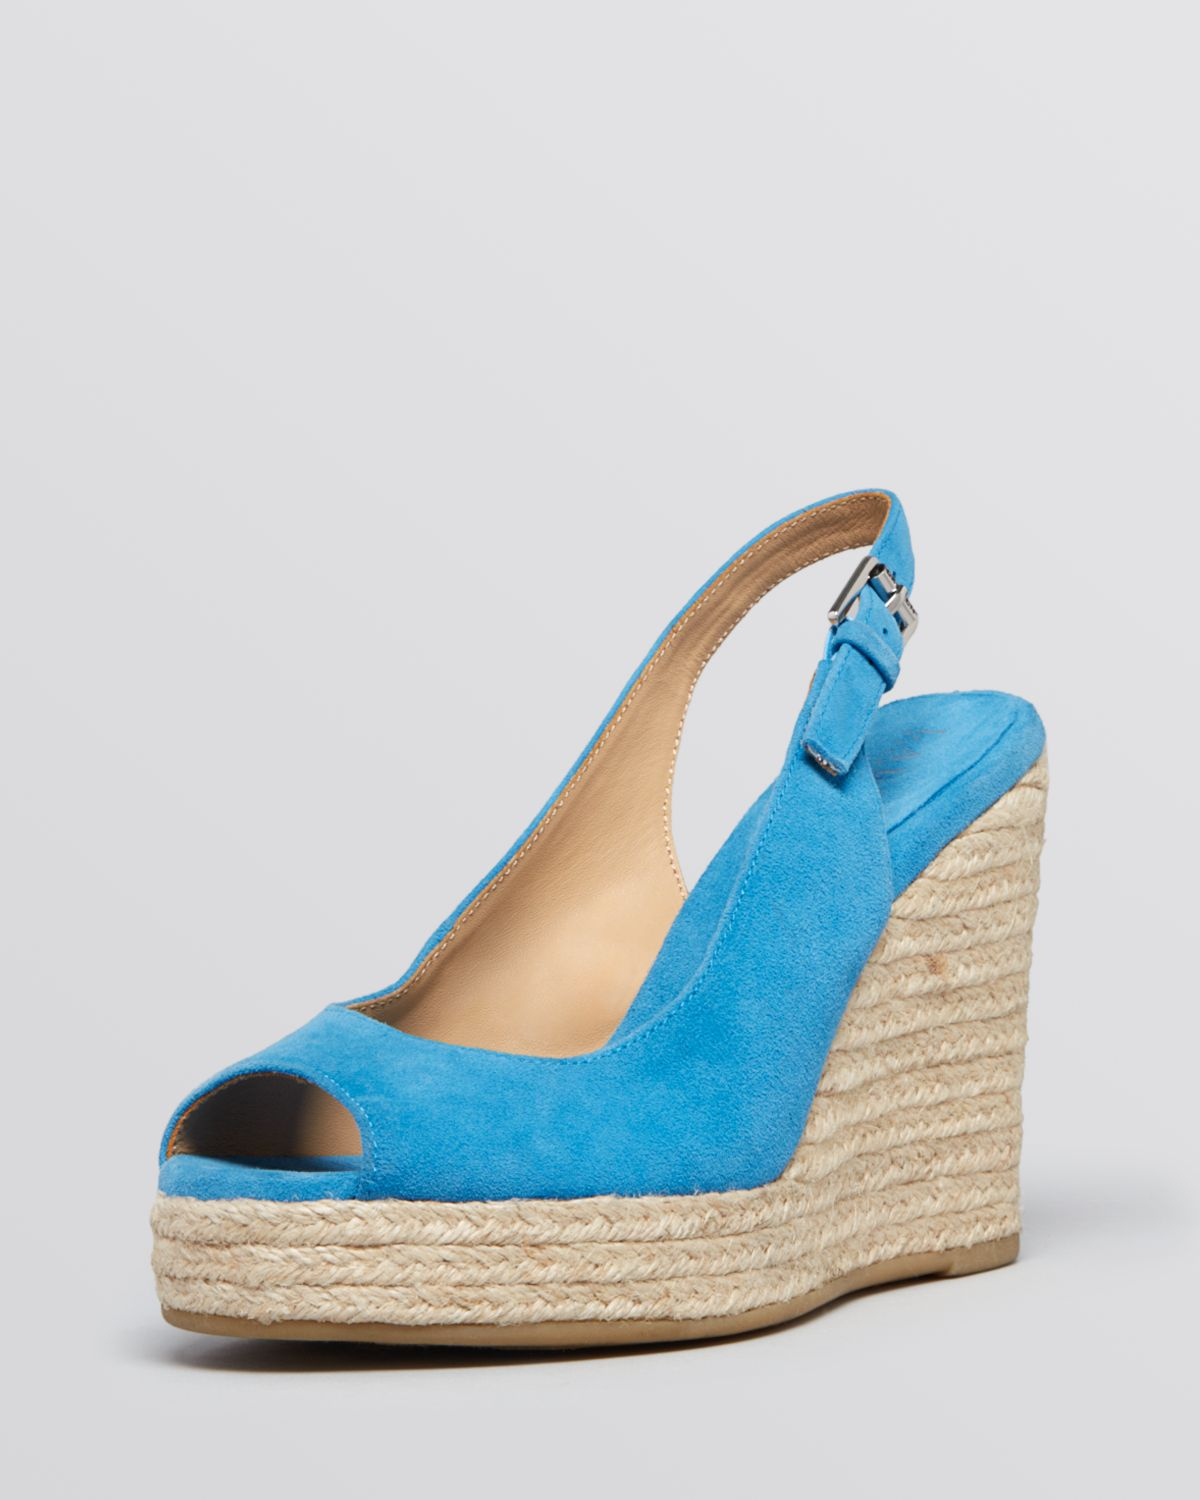 lauren by ralph lauren peep toe platform wedge espadrille sandals susy in blue french blue lyst. Black Bedroom Furniture Sets. Home Design Ideas